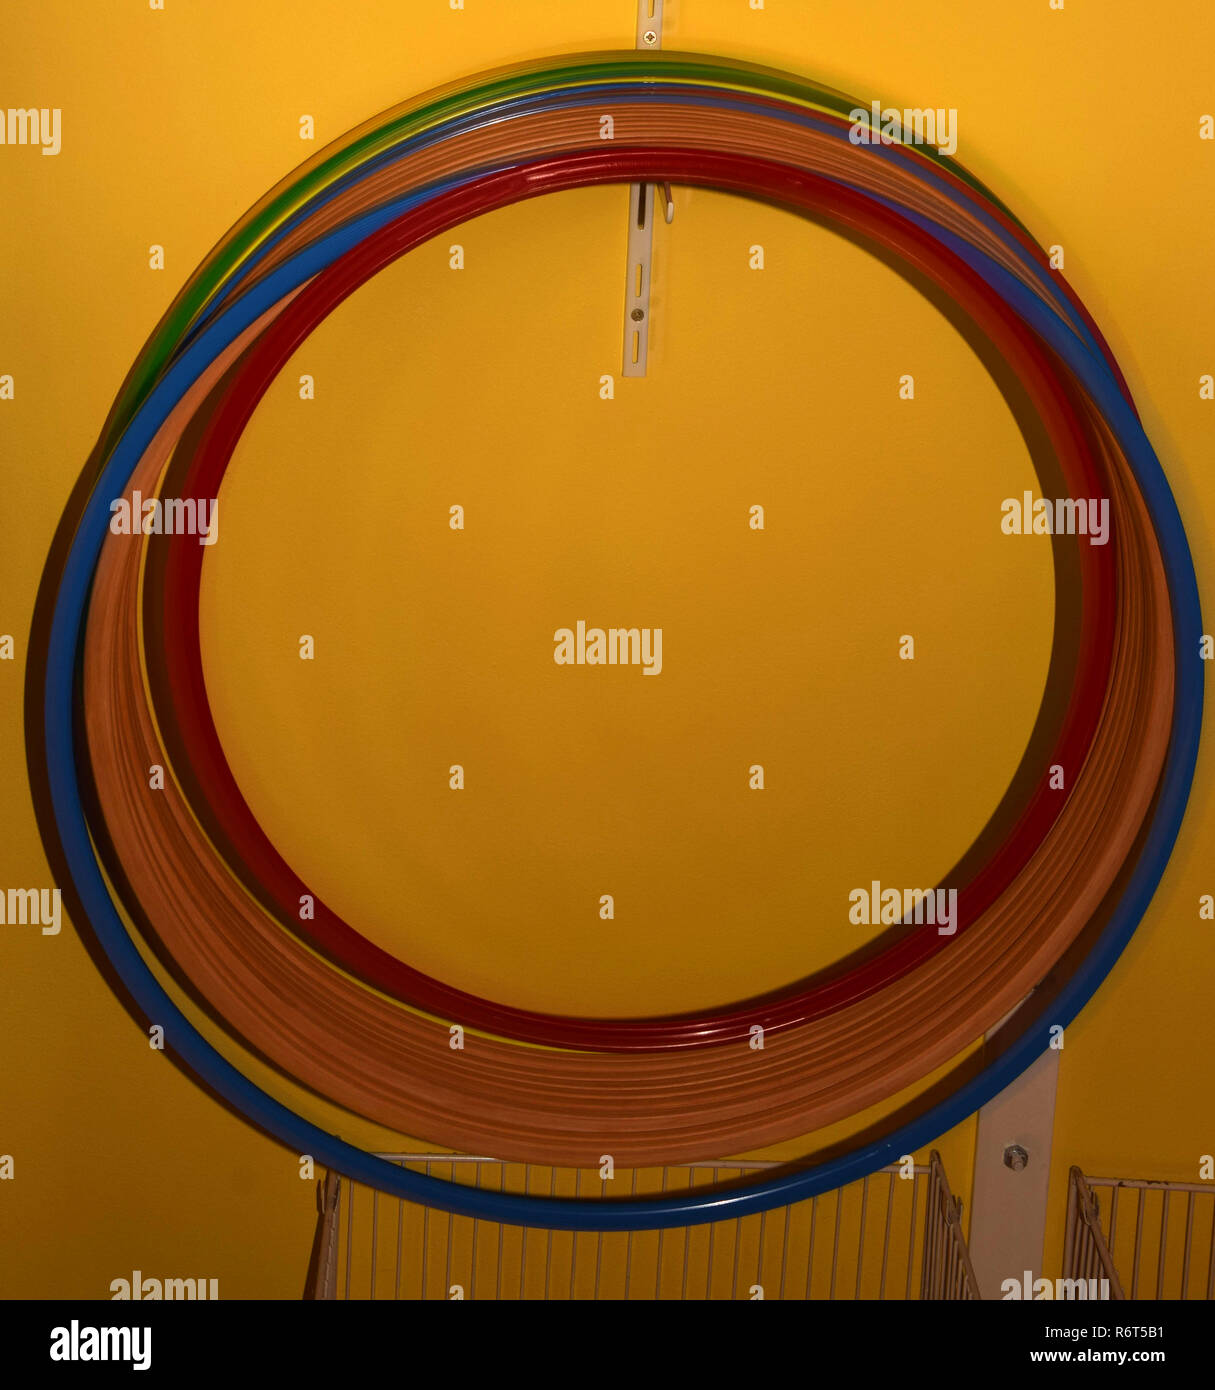 hula hoops without people, hula hoops made of different materials and colors hanging on a hook in front of yellow background - Stock Image